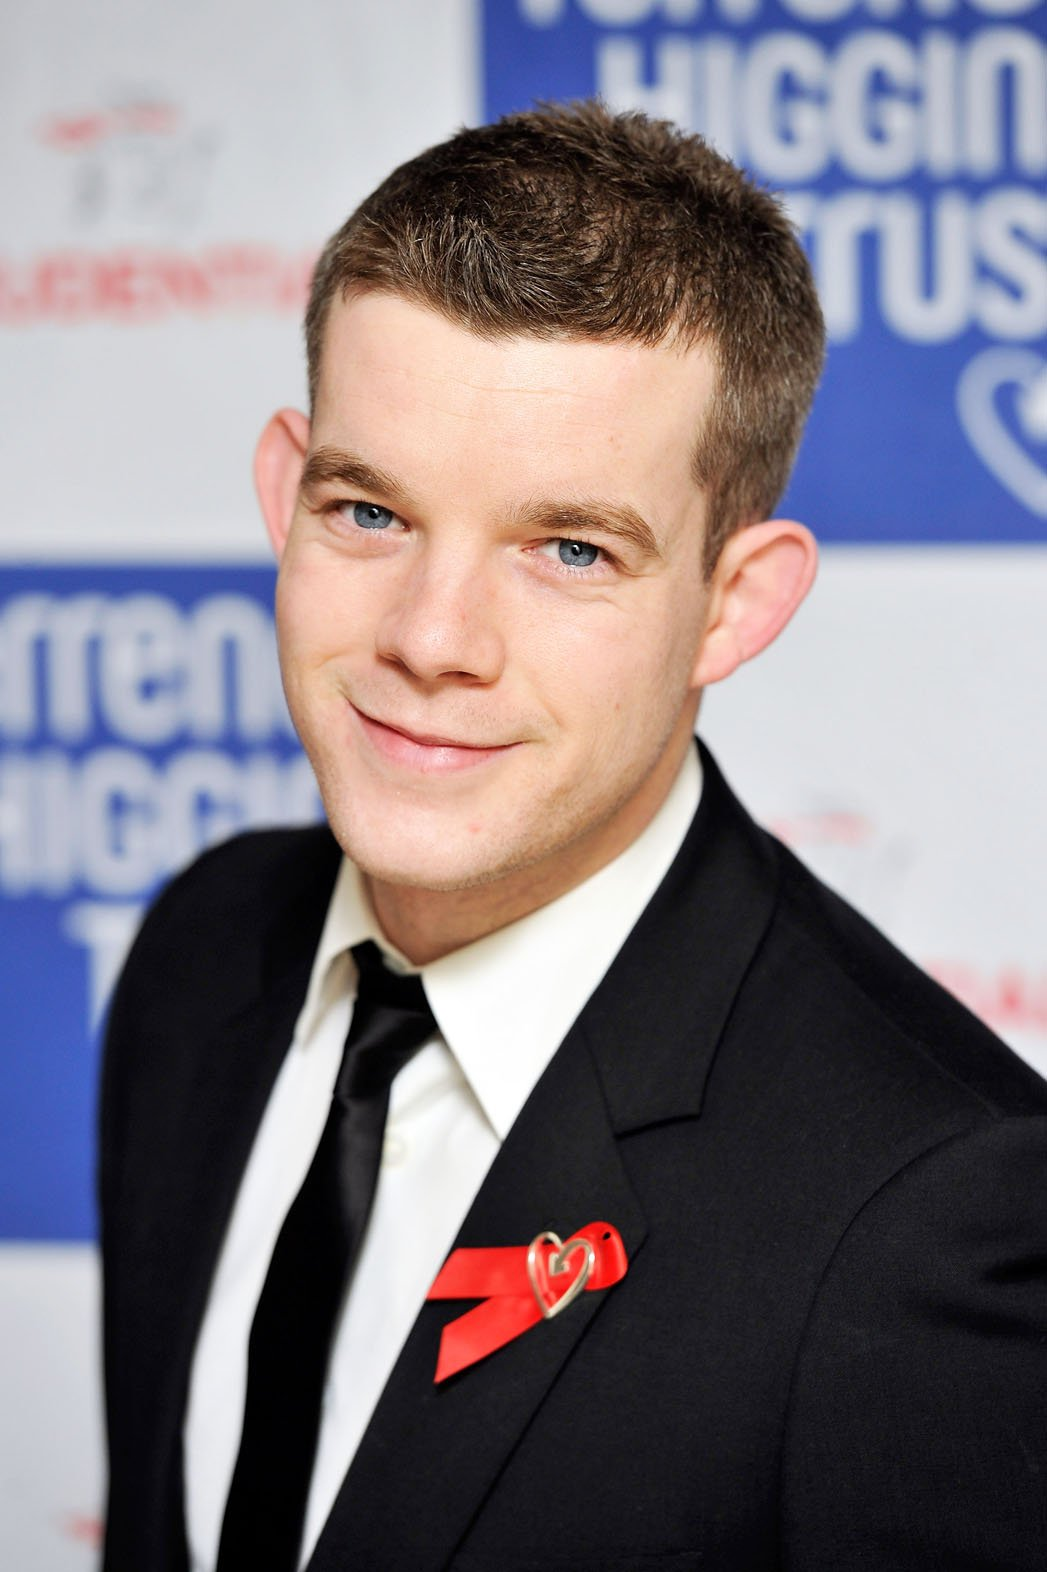 tovey gay personals As one of the stars of hbo gay drama looking, tovey has spoken about his  unique position as an actor who can convincingly play both gay.